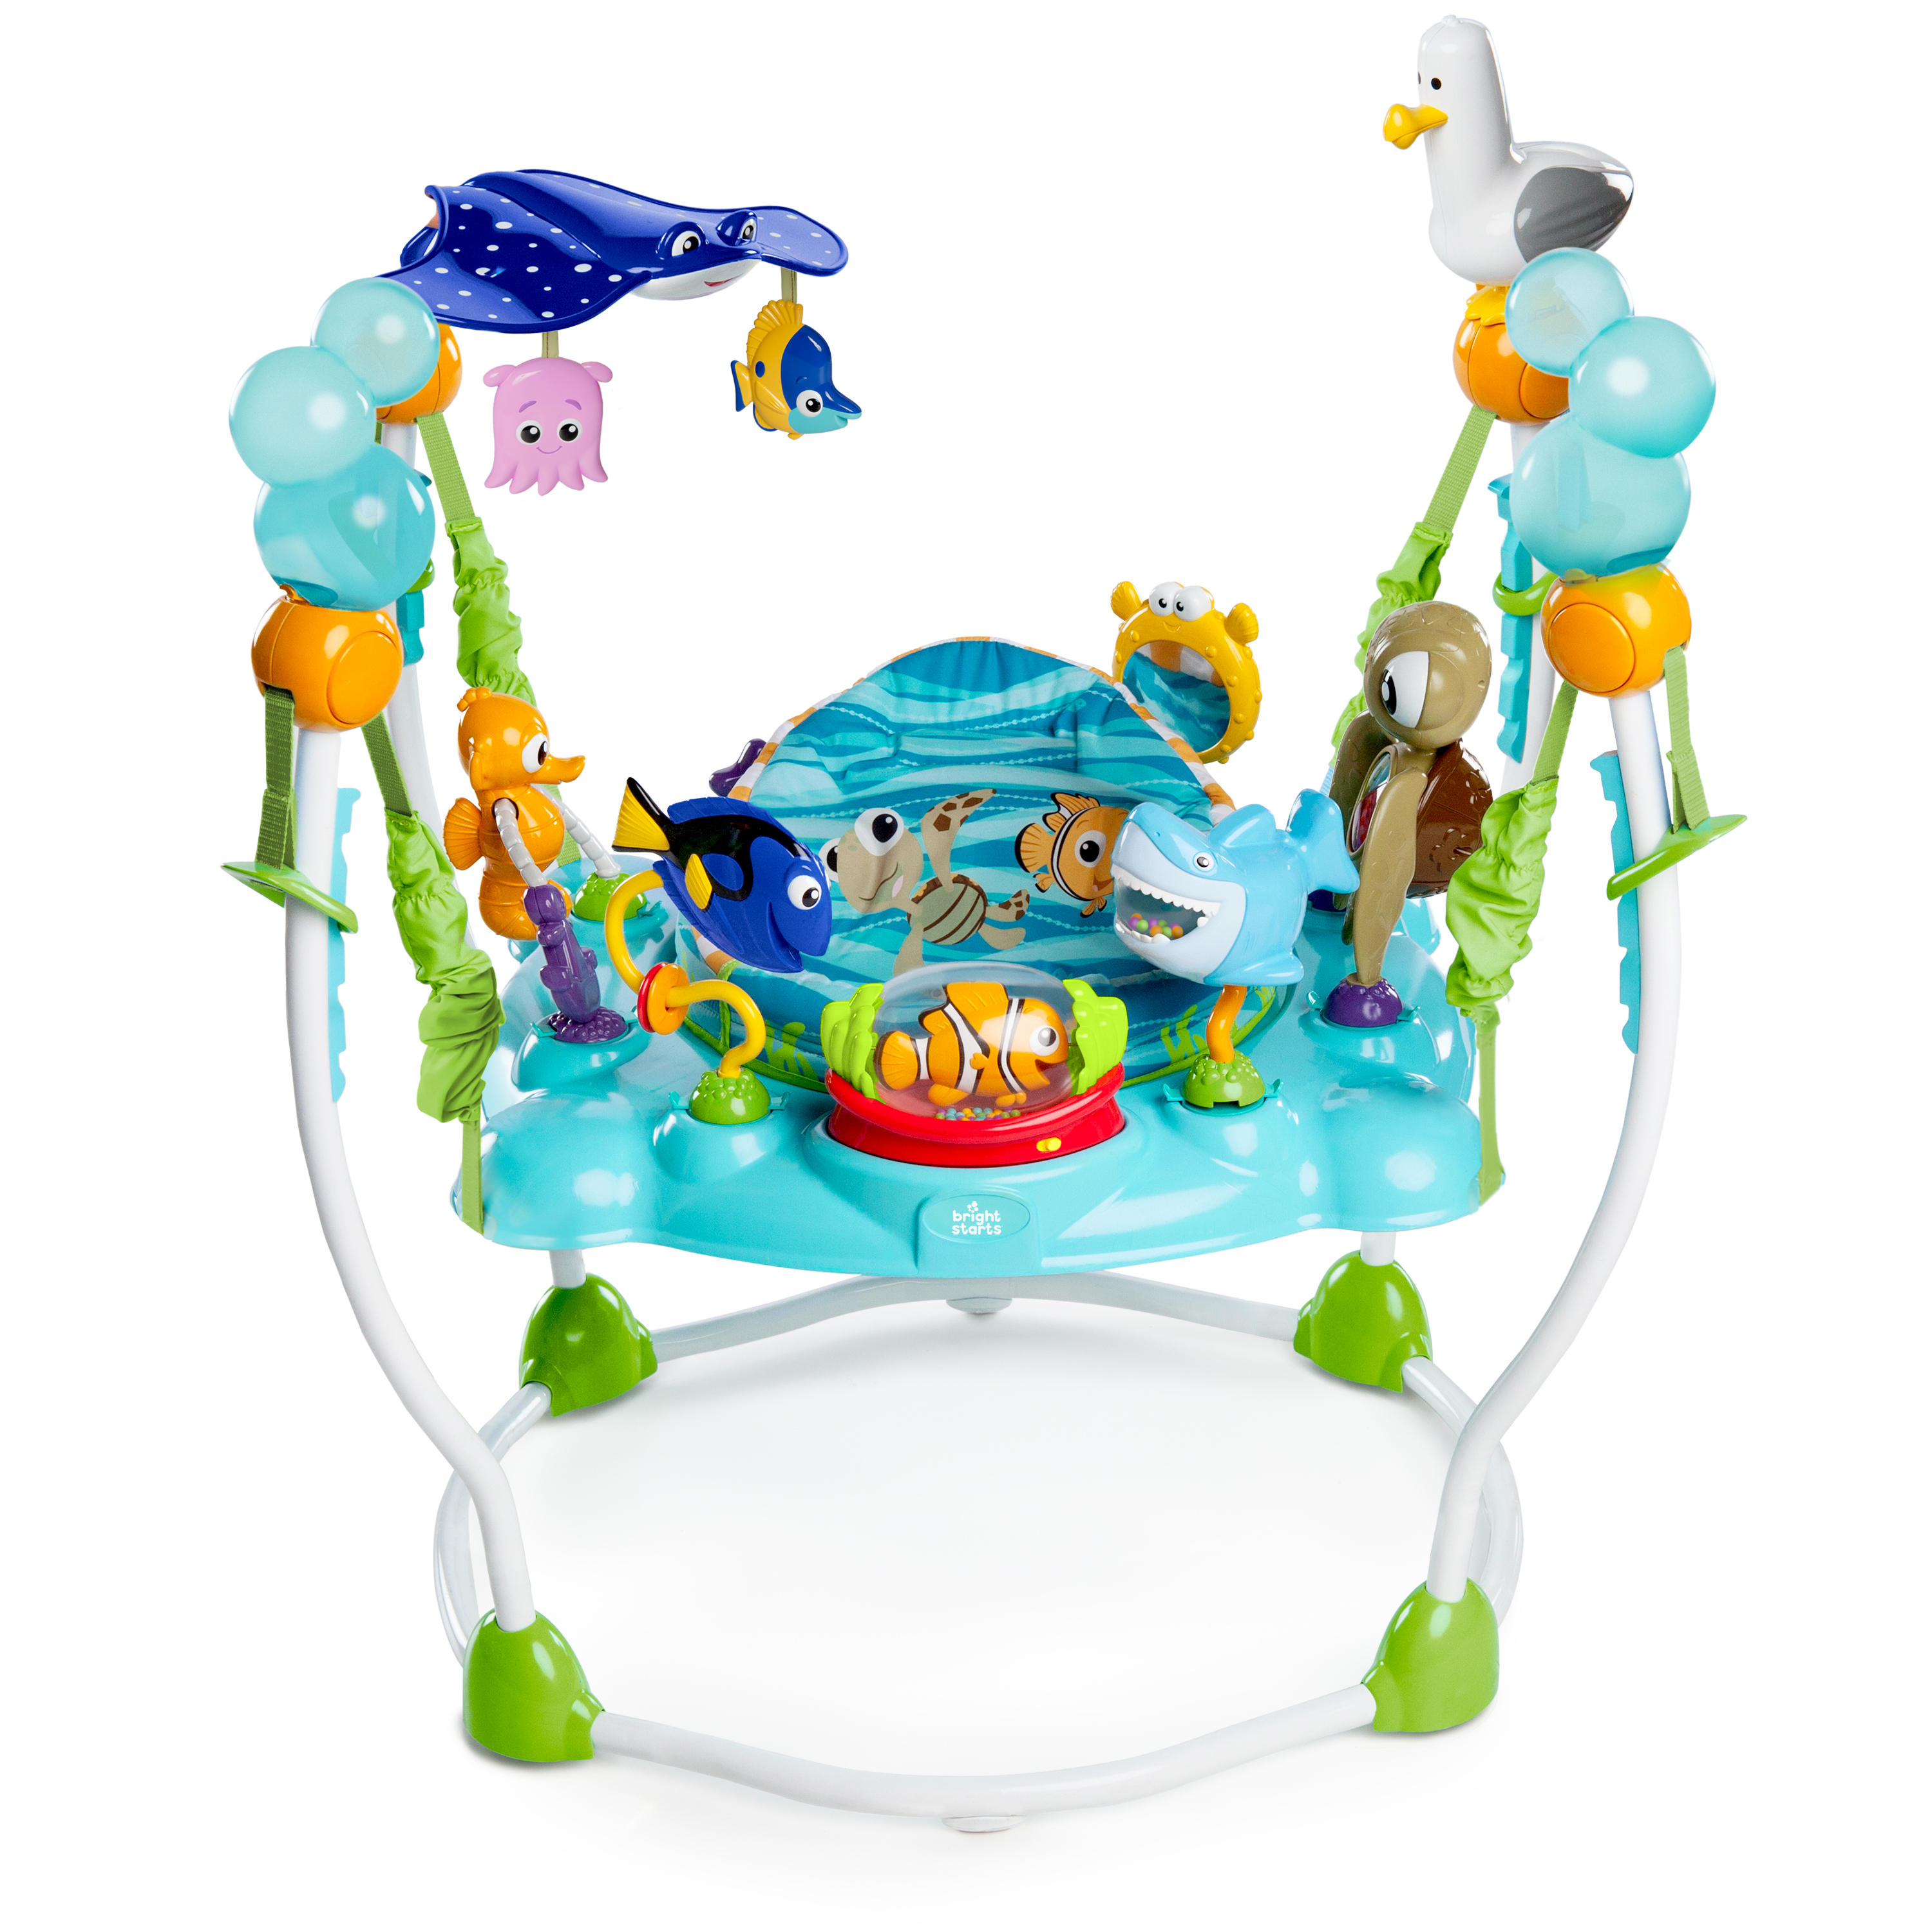 FINDING NEMO Sea of Activities Jumper™